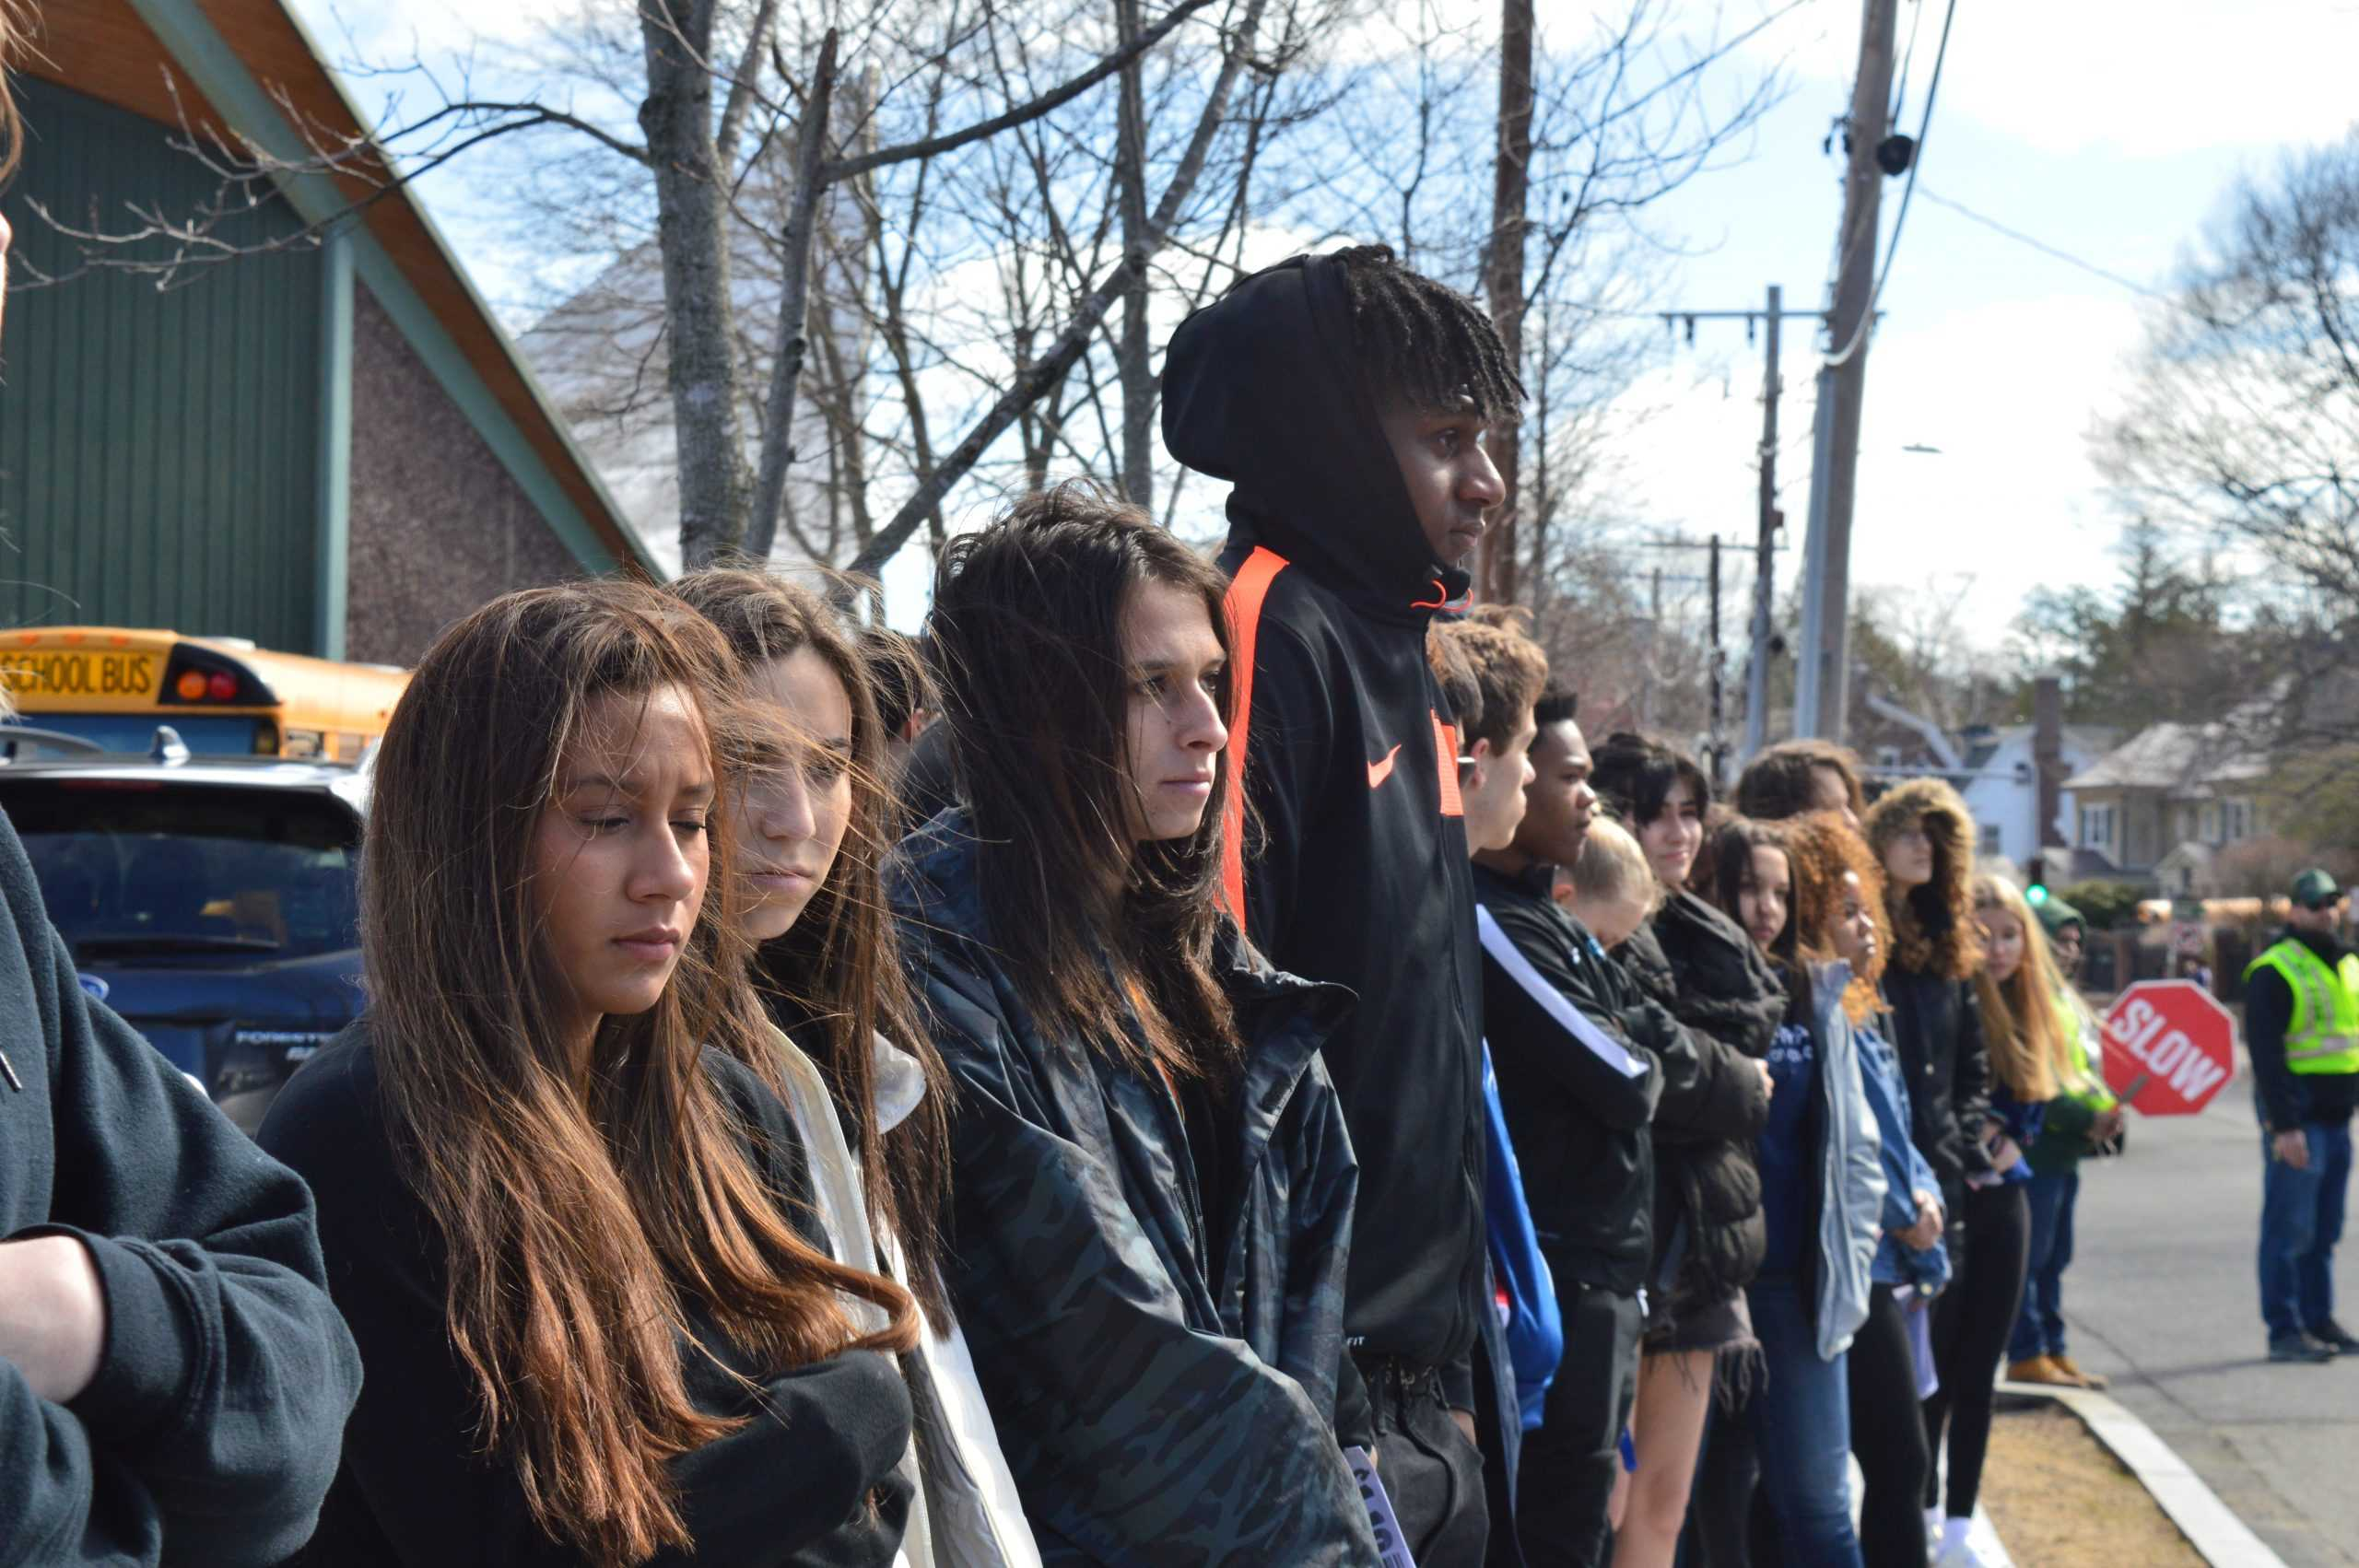 Students+participated+in+a+walk-out+for+%27radical+compassion.%27